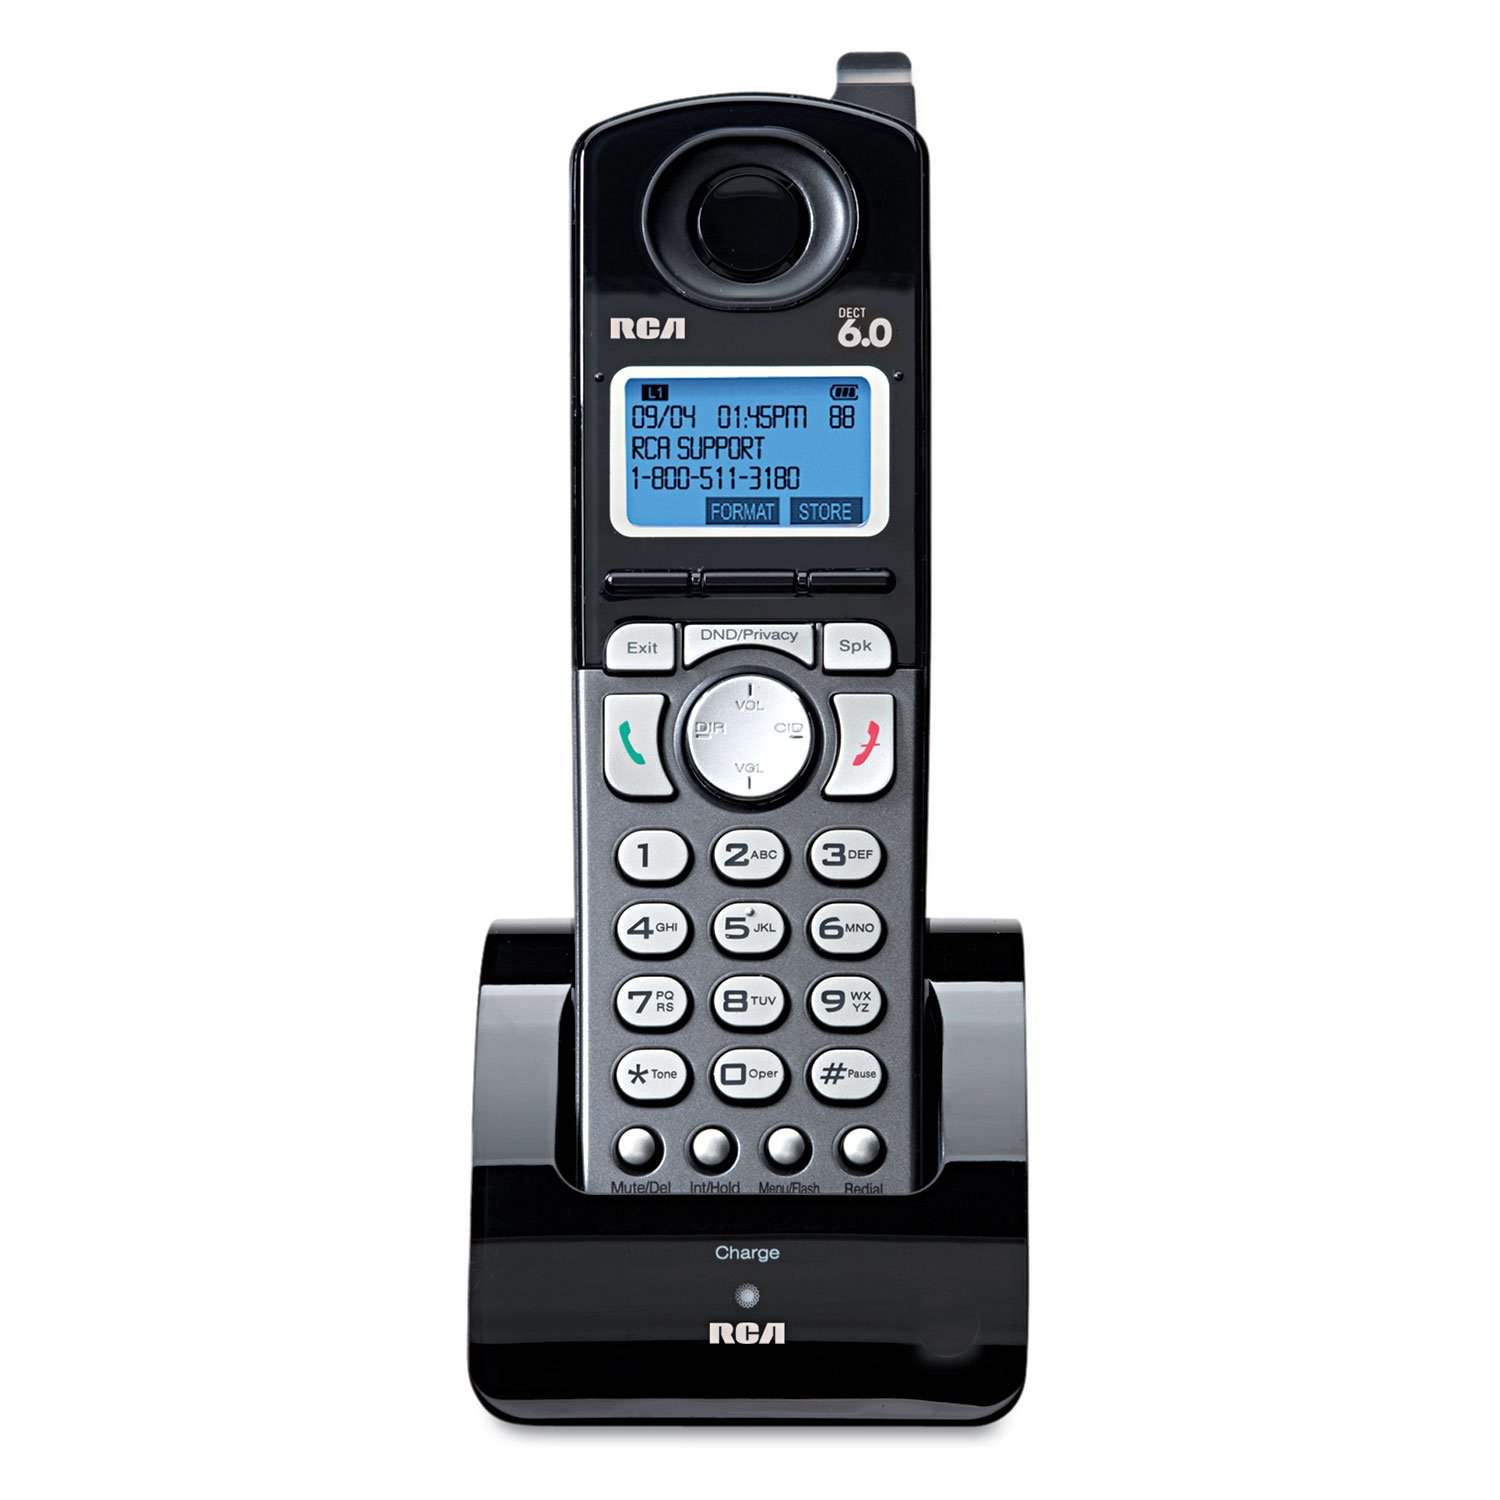 RCA 25055RE1 DECT 6.0 Cordless 2-Line Handset Accessory for RCA 2-Line Base Station (Handset Does Not Work Independently) by RCA